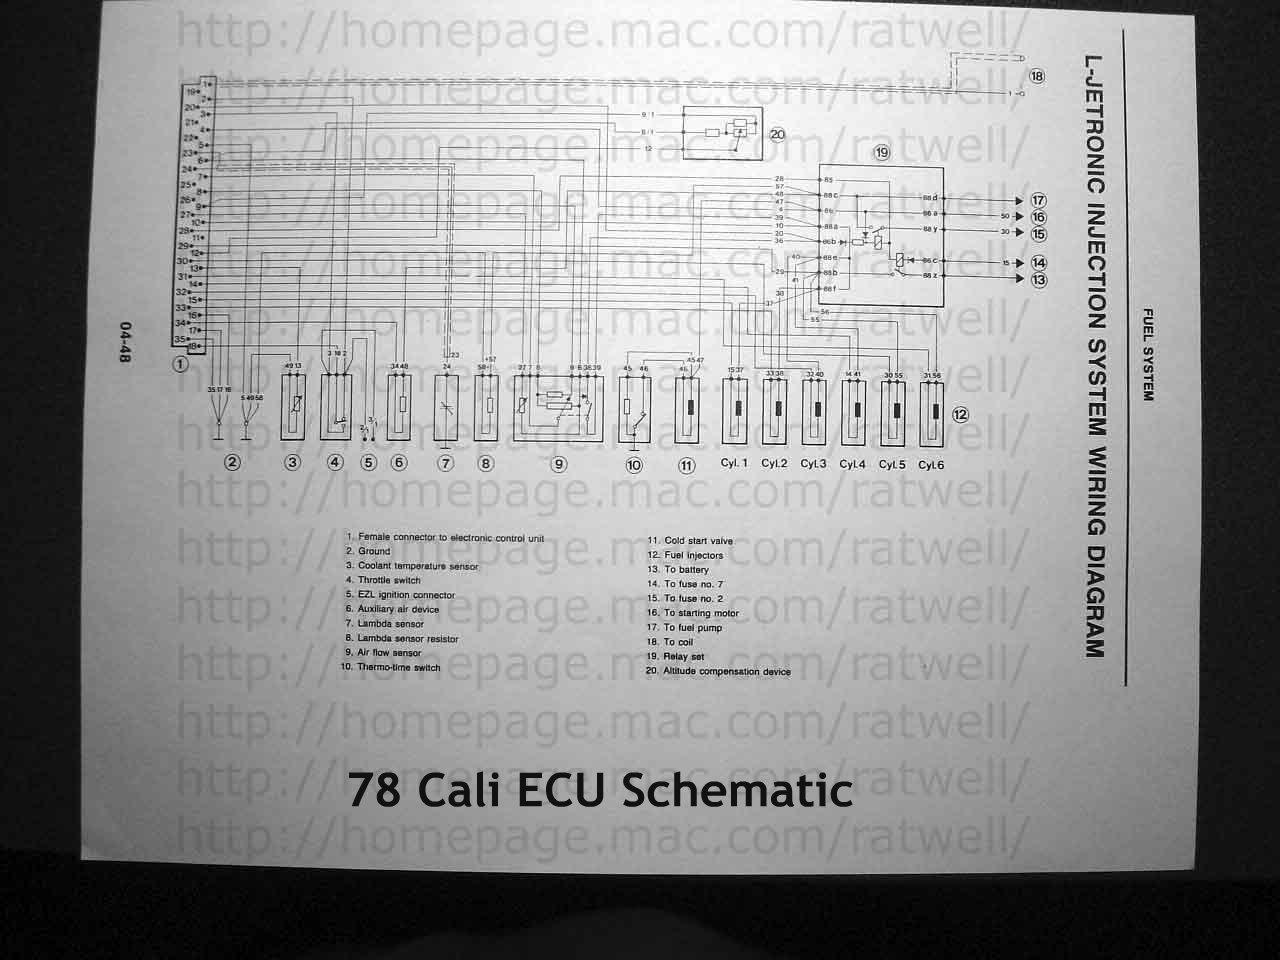 Bay Window Bus View Topic L Jetronic Ecu Custom For Fuel Injection Regulation Schematics And Layout Image May Have Been Reduced In Size Click To Fullscreen